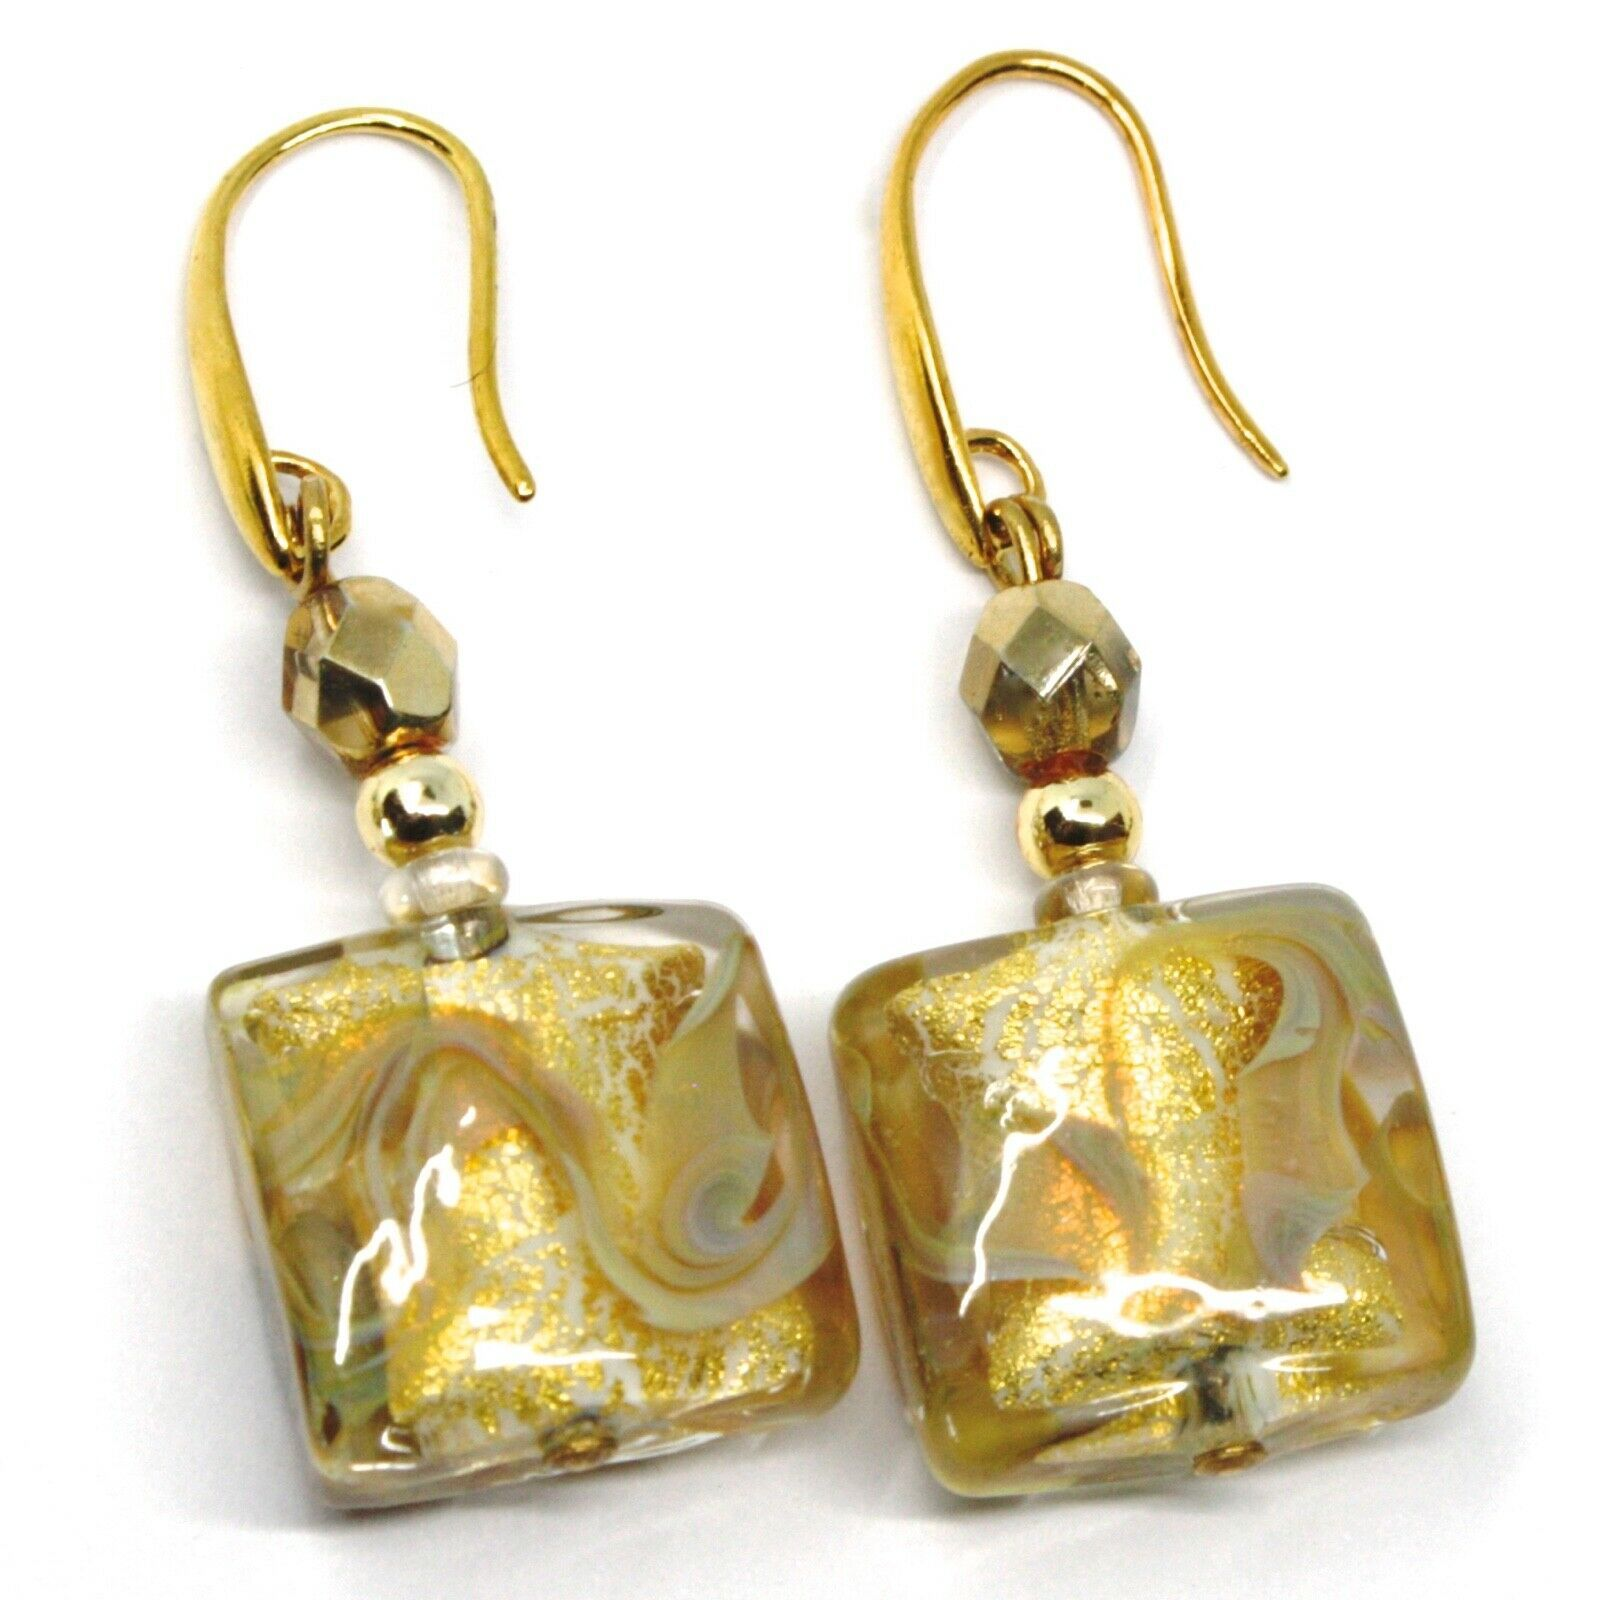 PENDANT EARRINGS WITH WHITE MURANO SQUARE GLASS & GOLD LEAF, MADE IN ITALY, 5cm